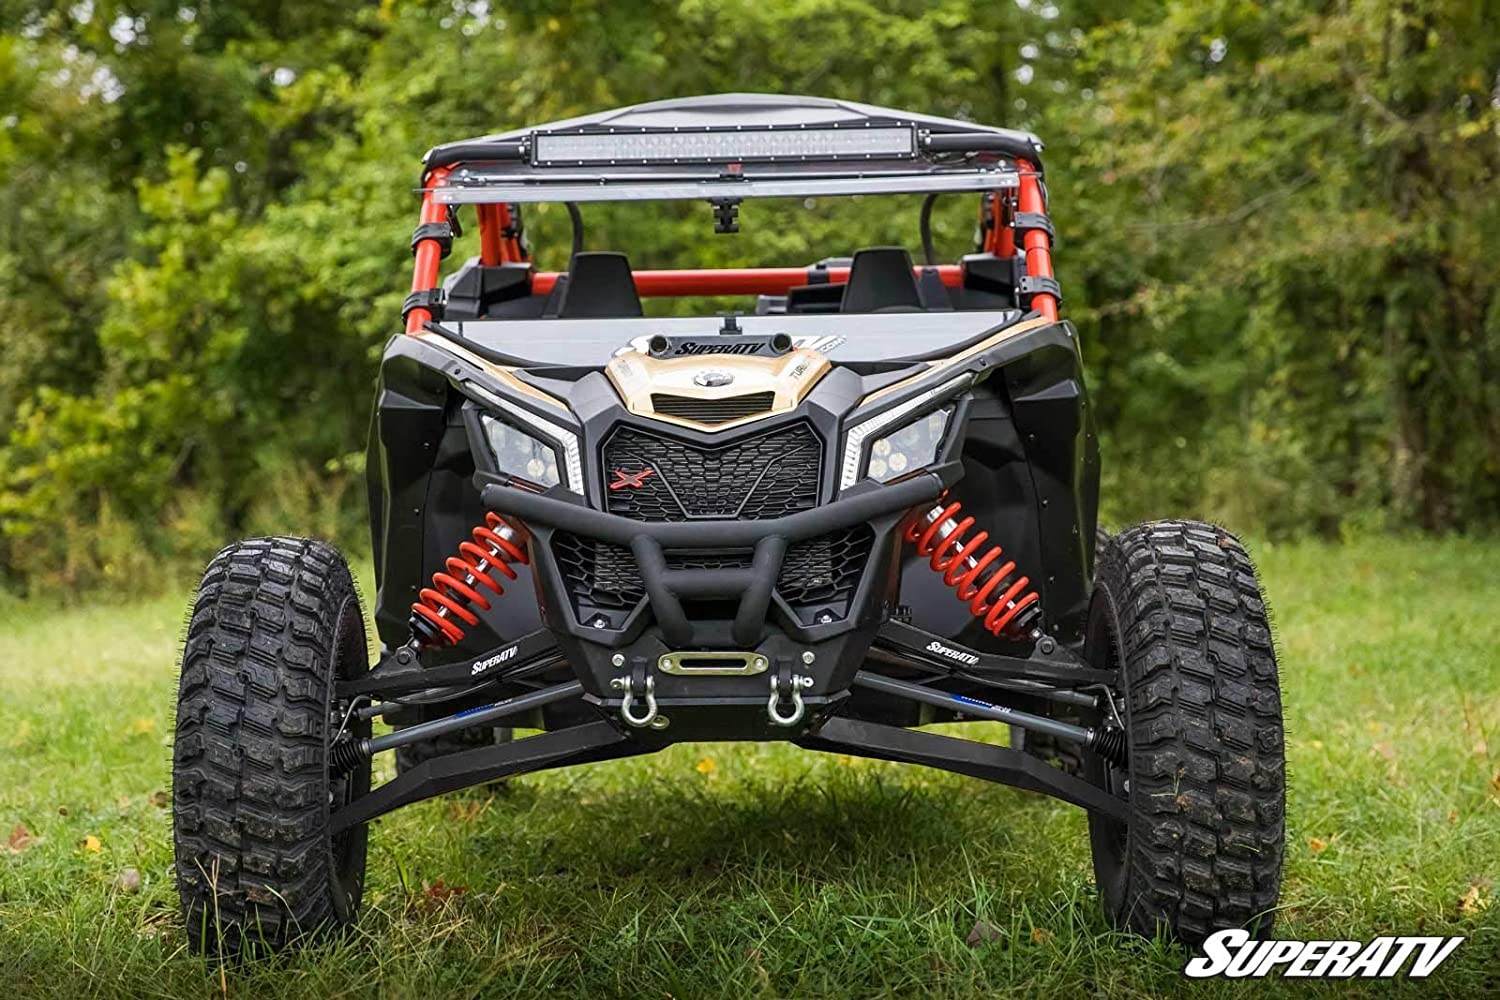 Amazon.com: SuperATV Heavy Duty High Clearance Boxed Front A-Arms for 72